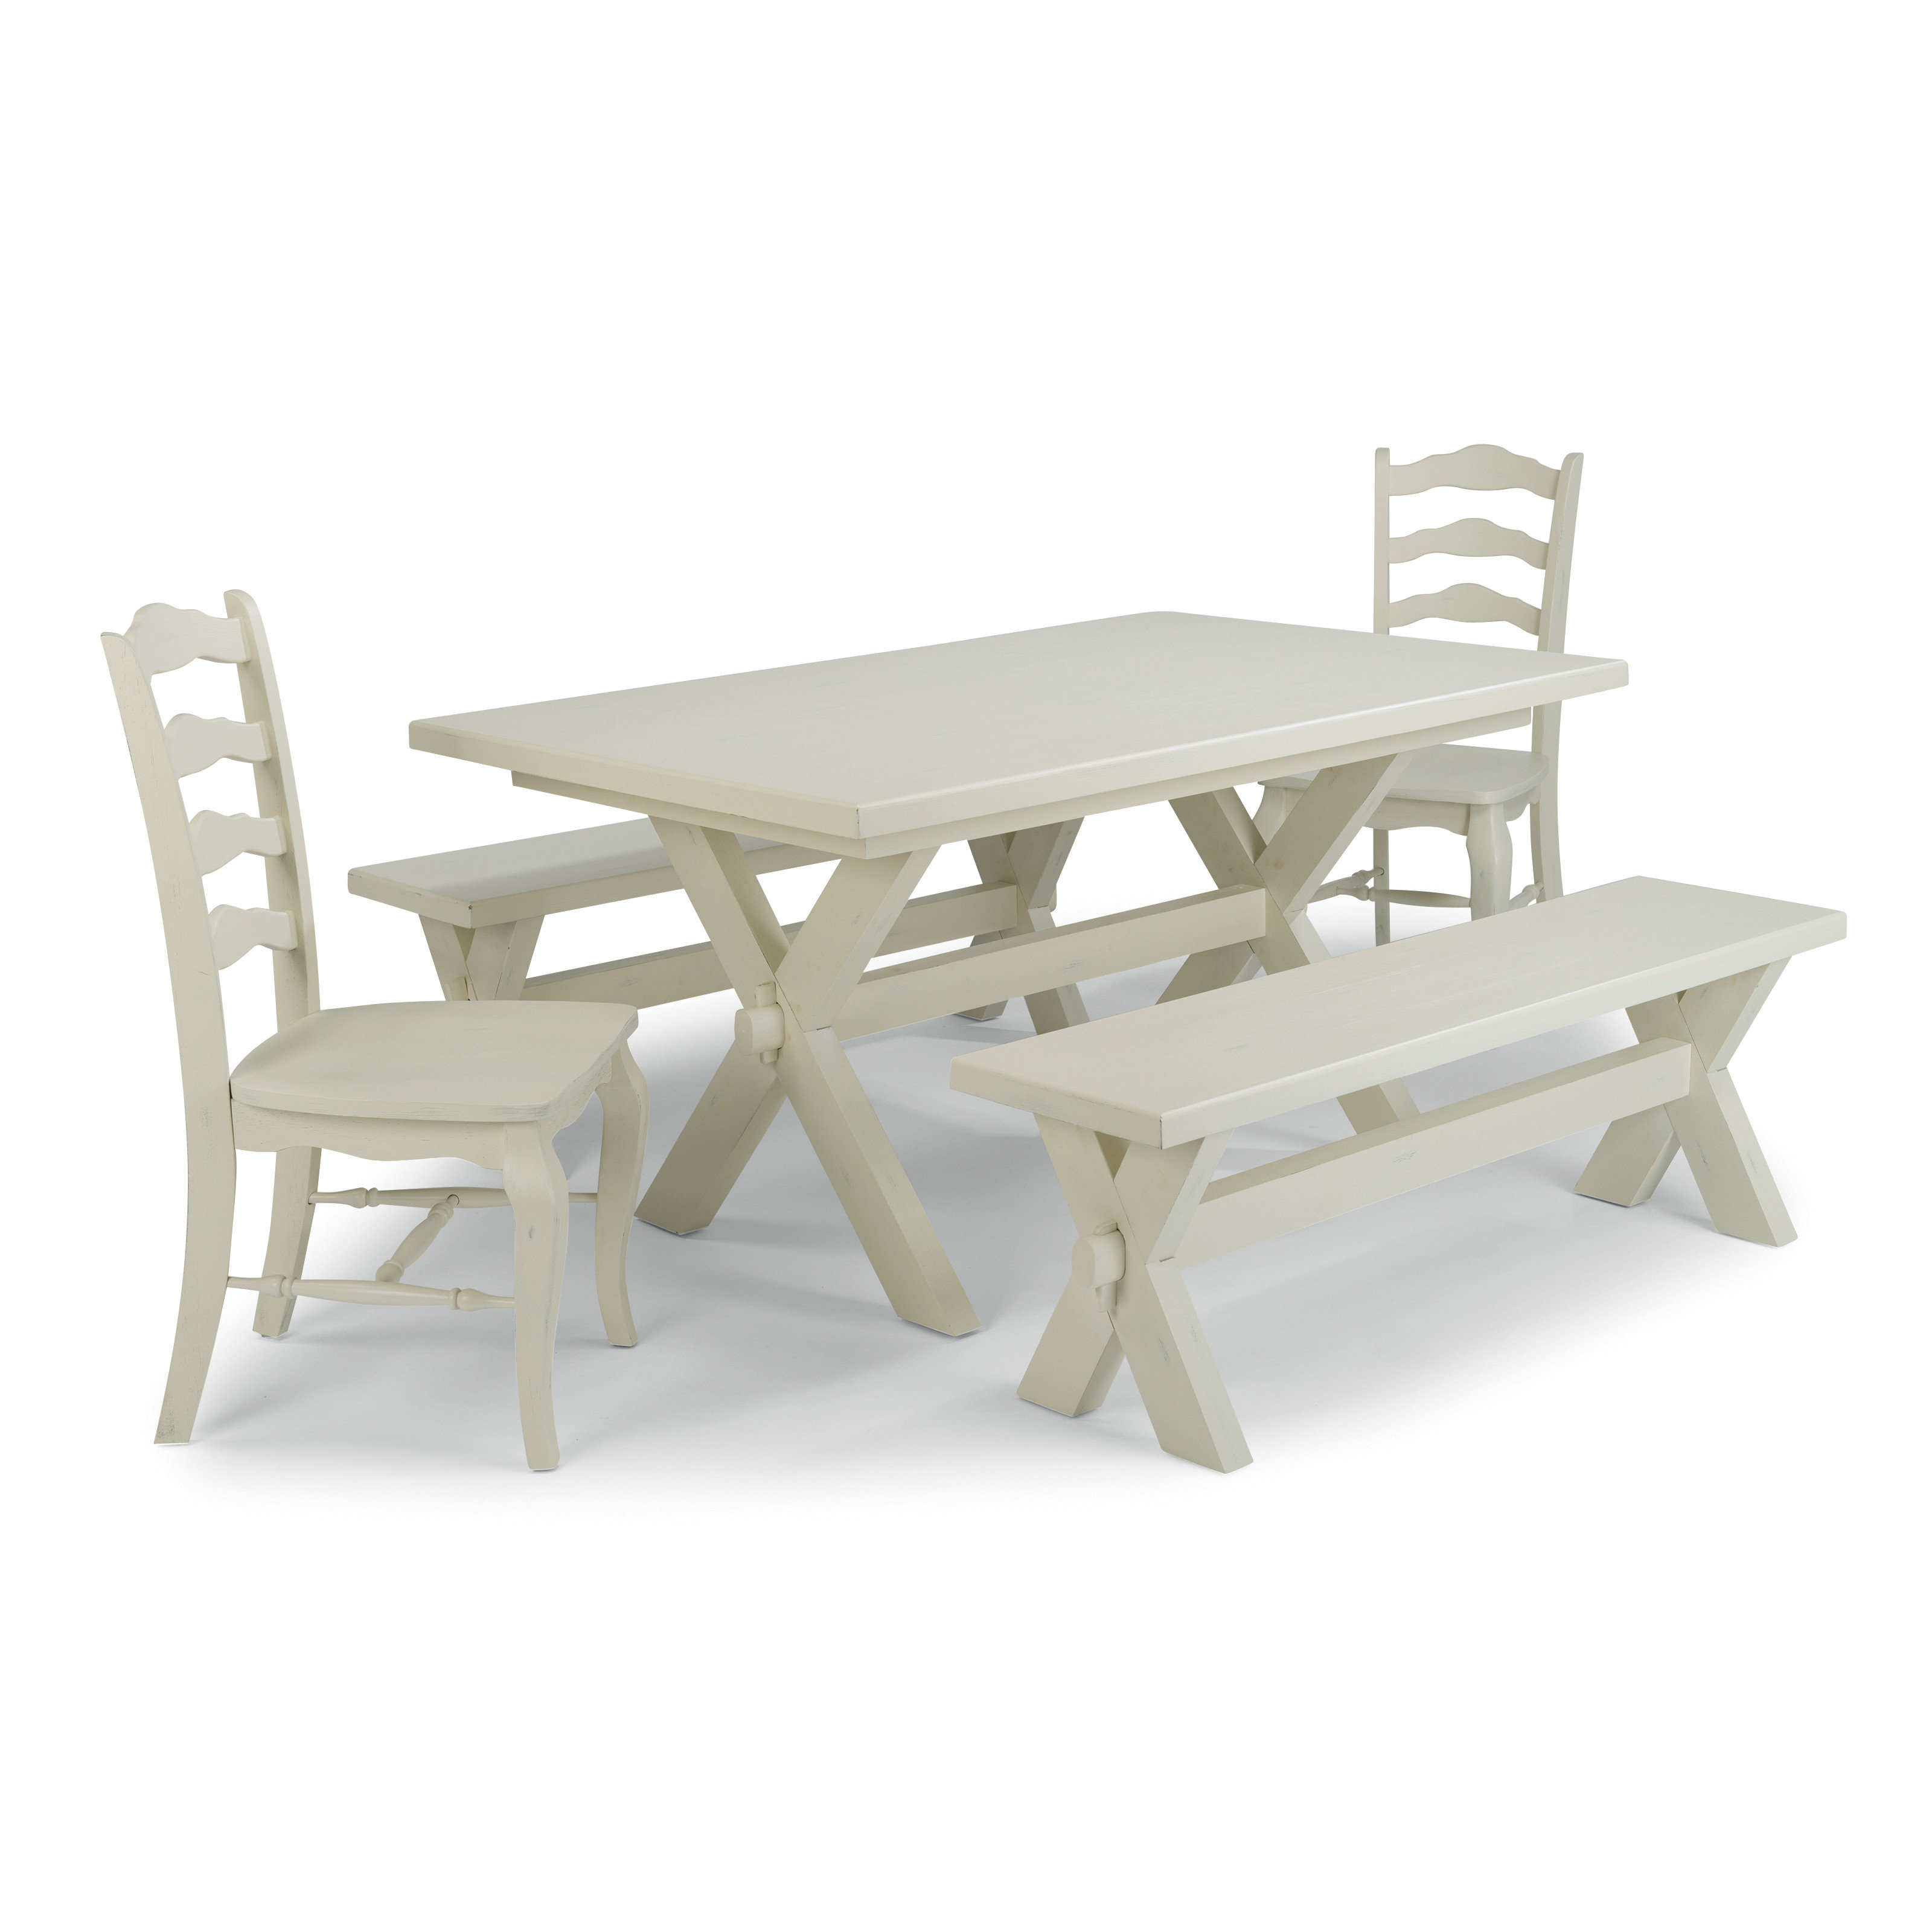 Moravia 5 Piece Dining Set With Regard To Best And Newest Kieffer 5 Piece Dining Sets (View 15 of 20)